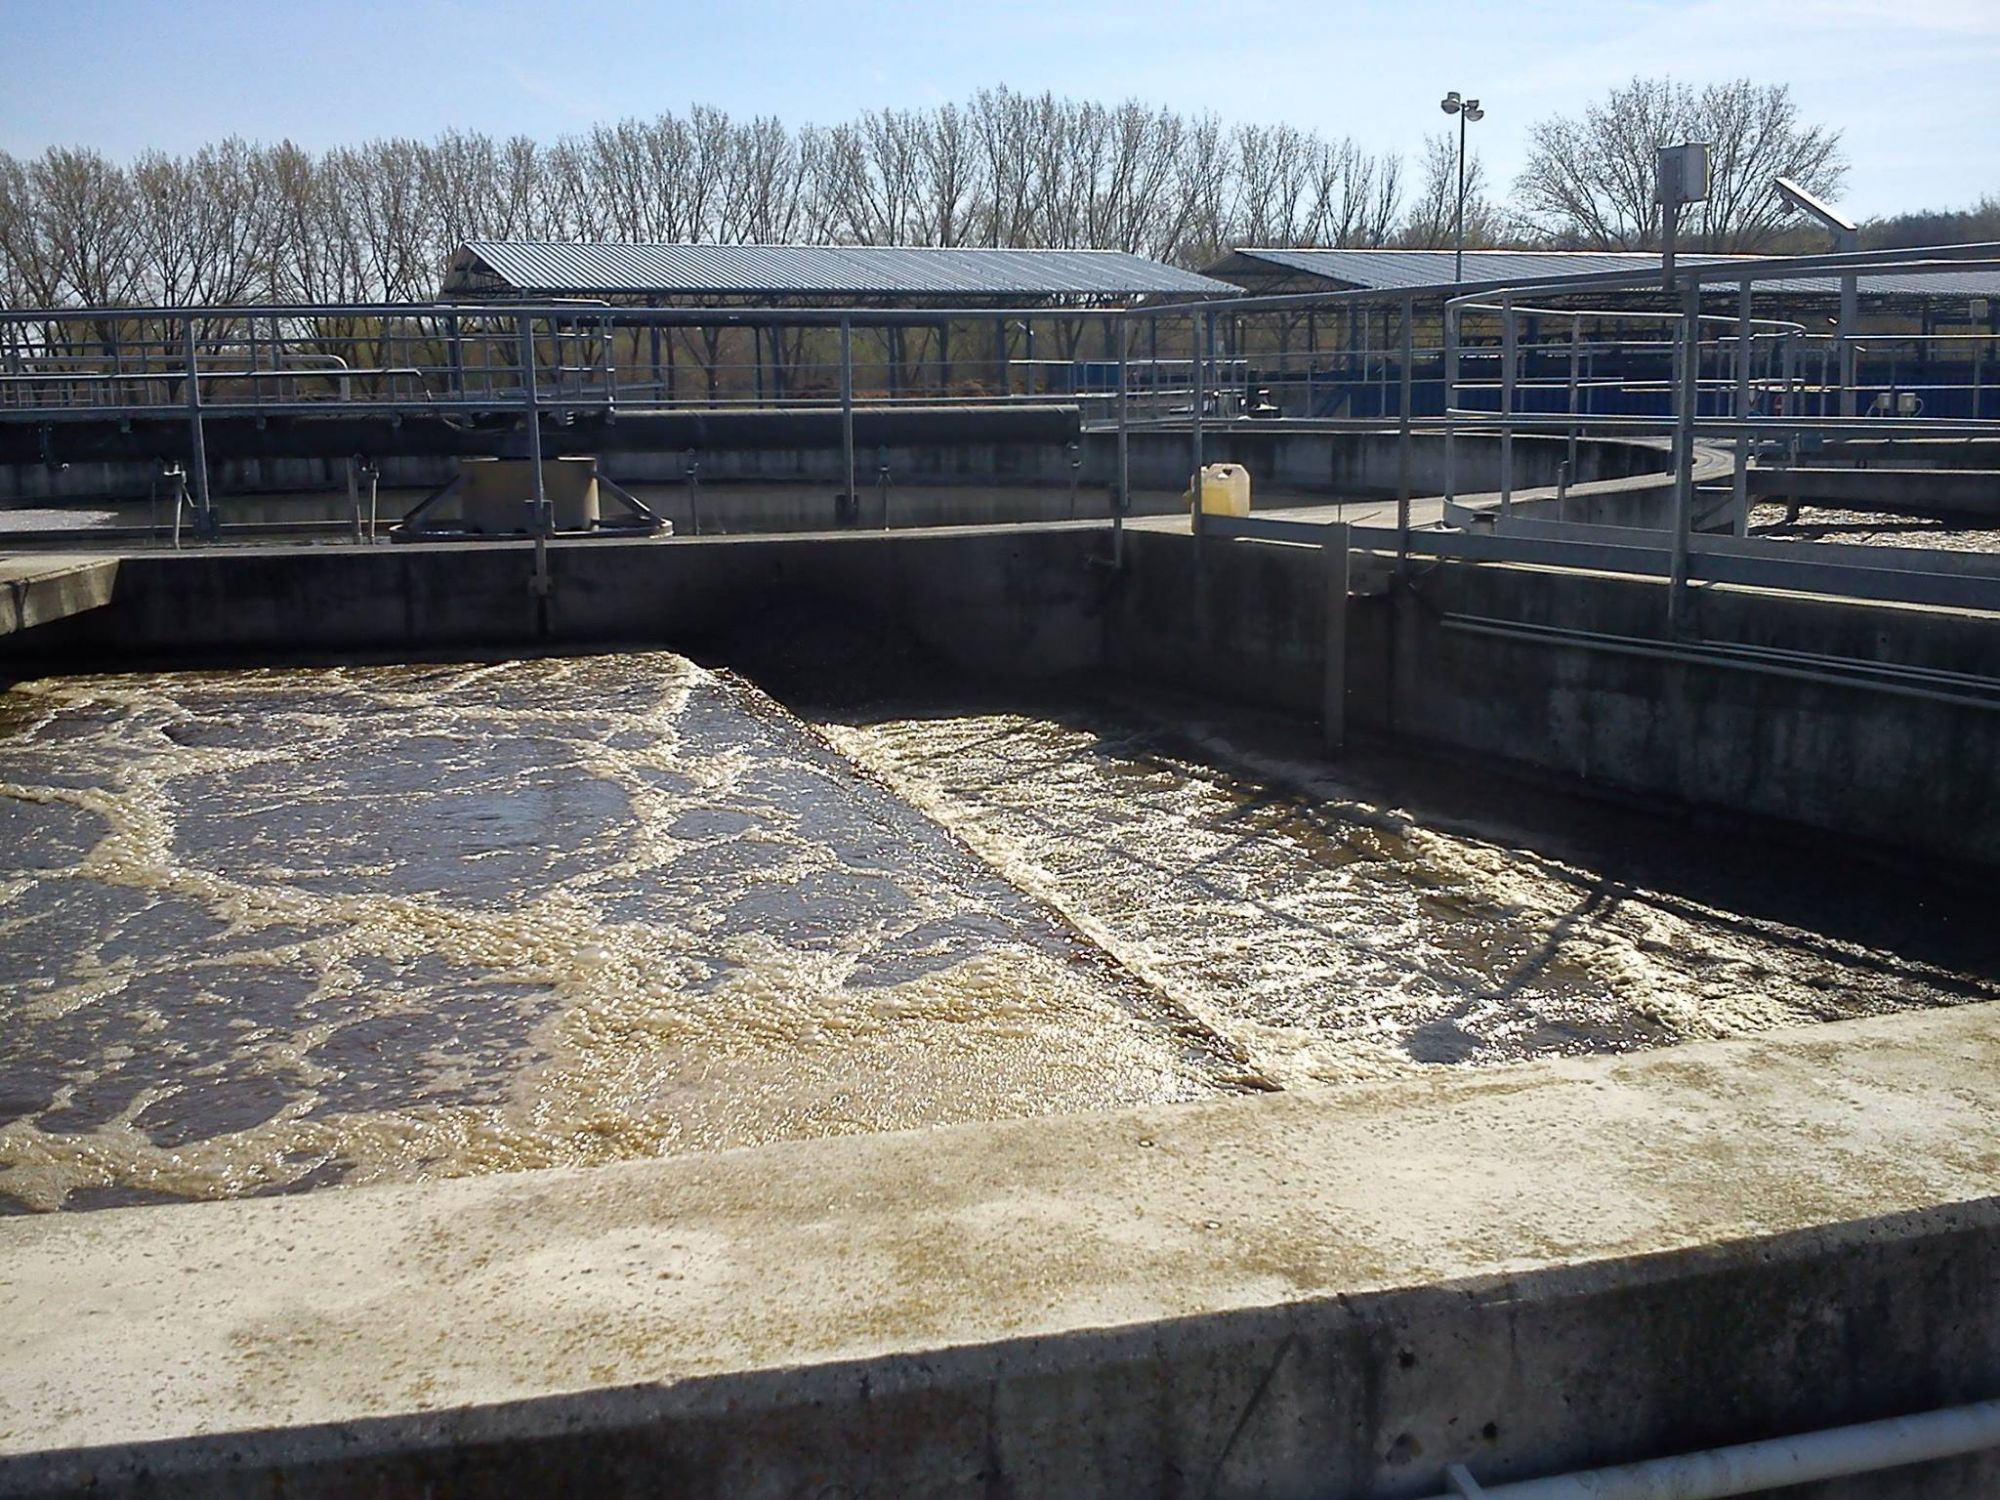 analysis of the wastewater